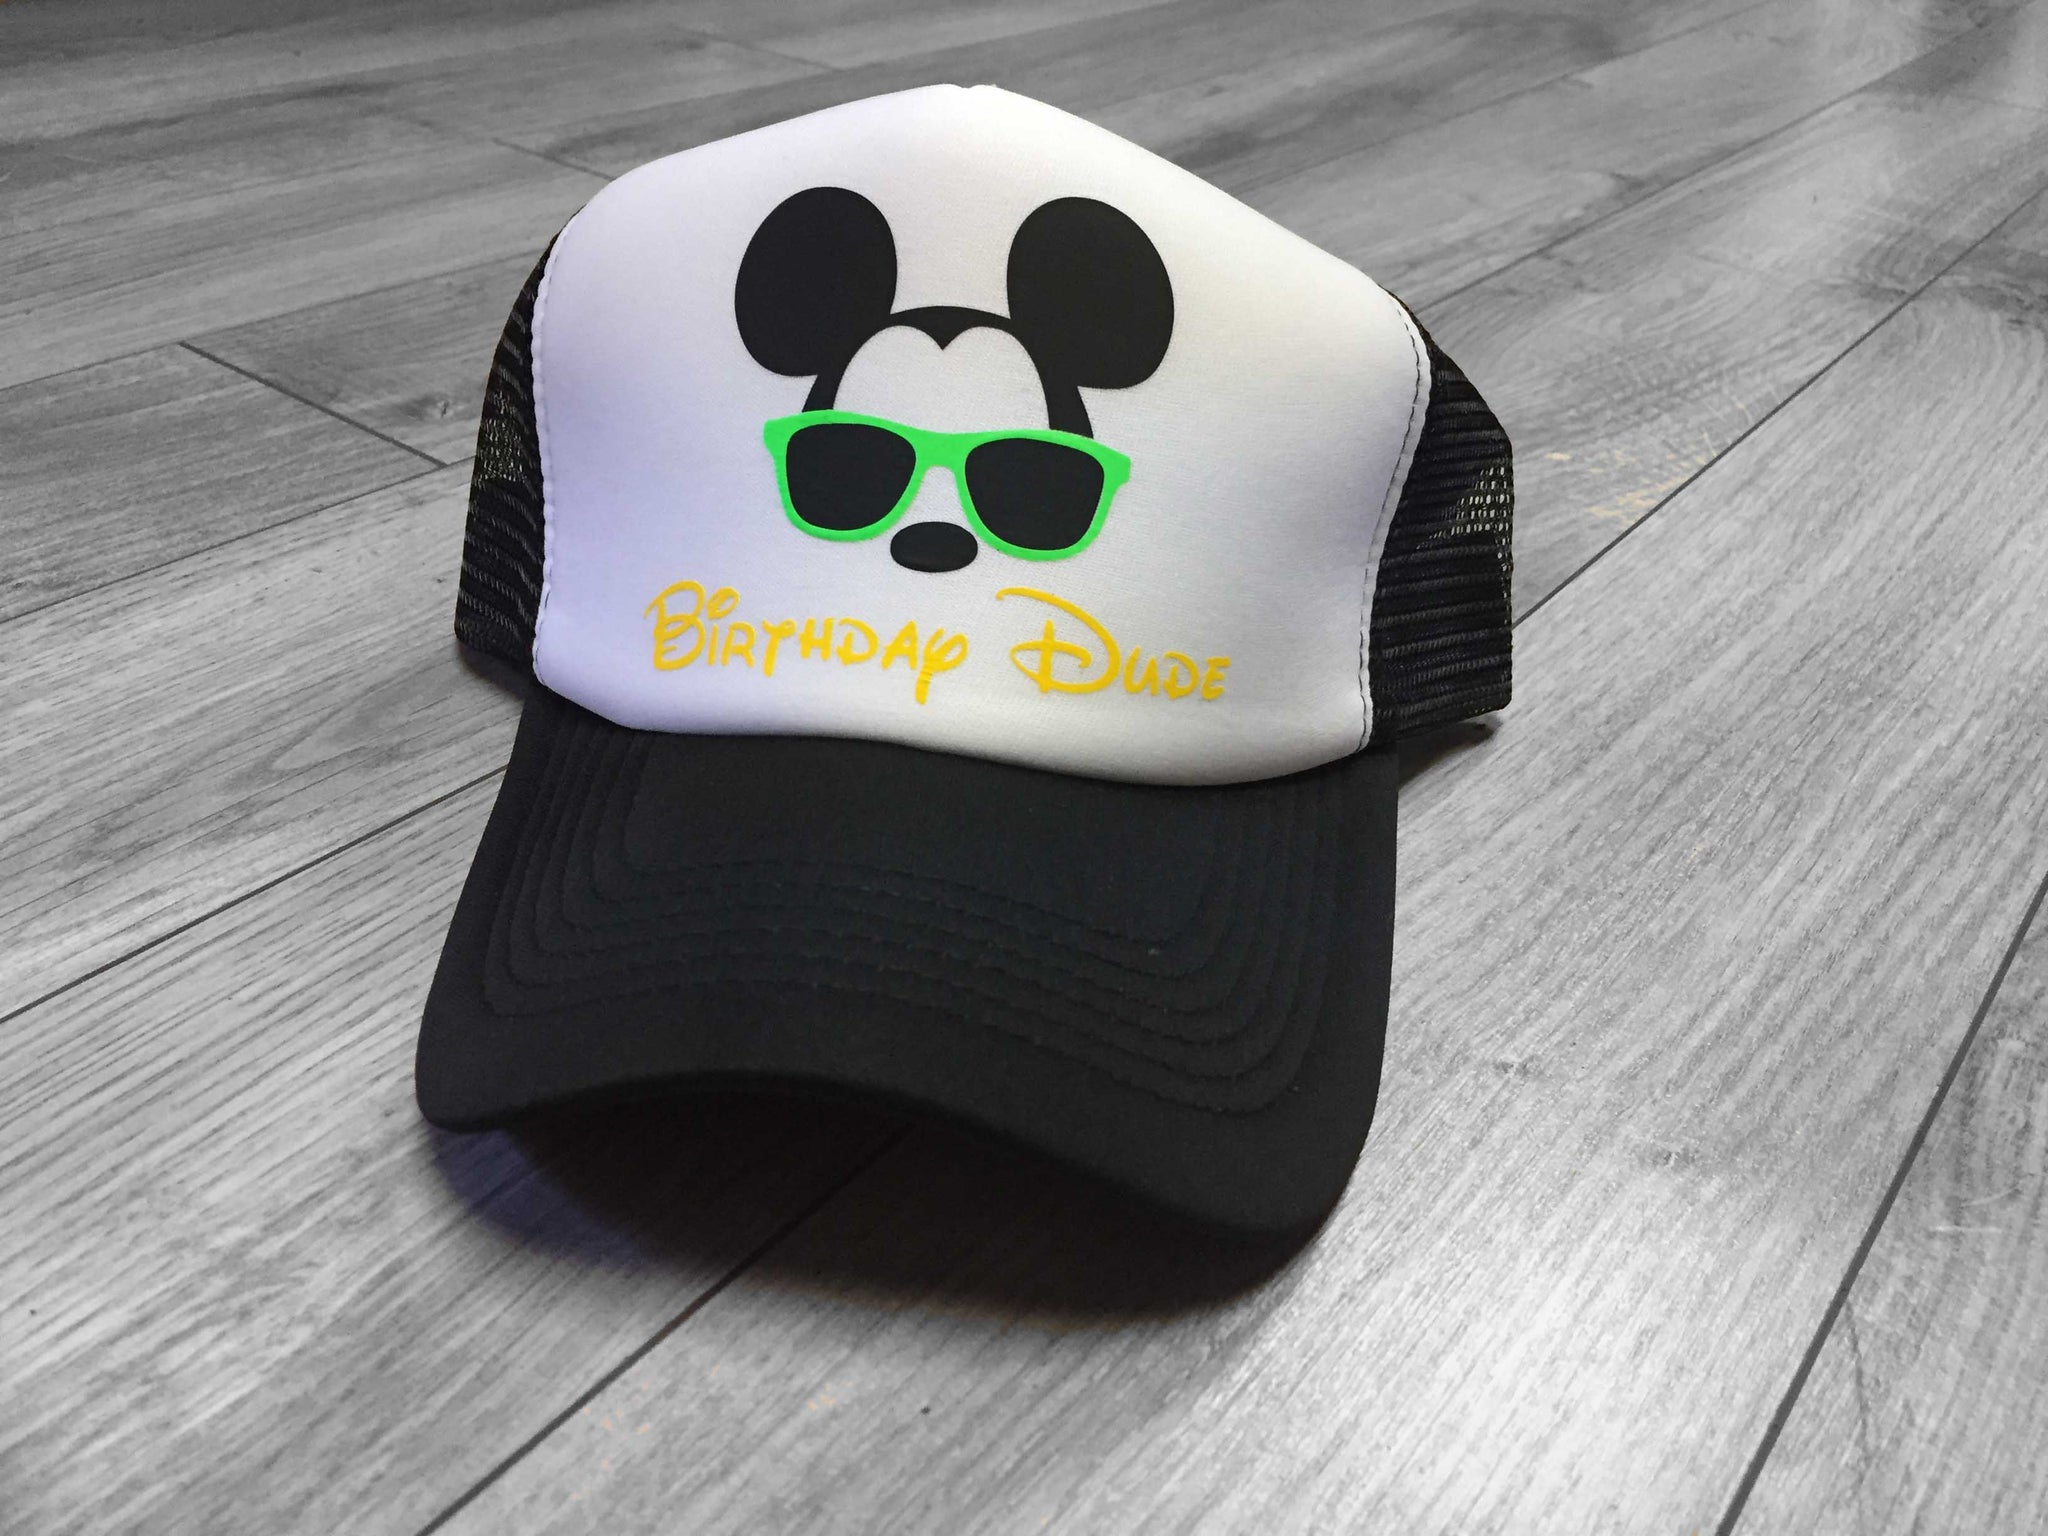 95348616ba4 Personalized Shirts And Hats - BCD Tofu House